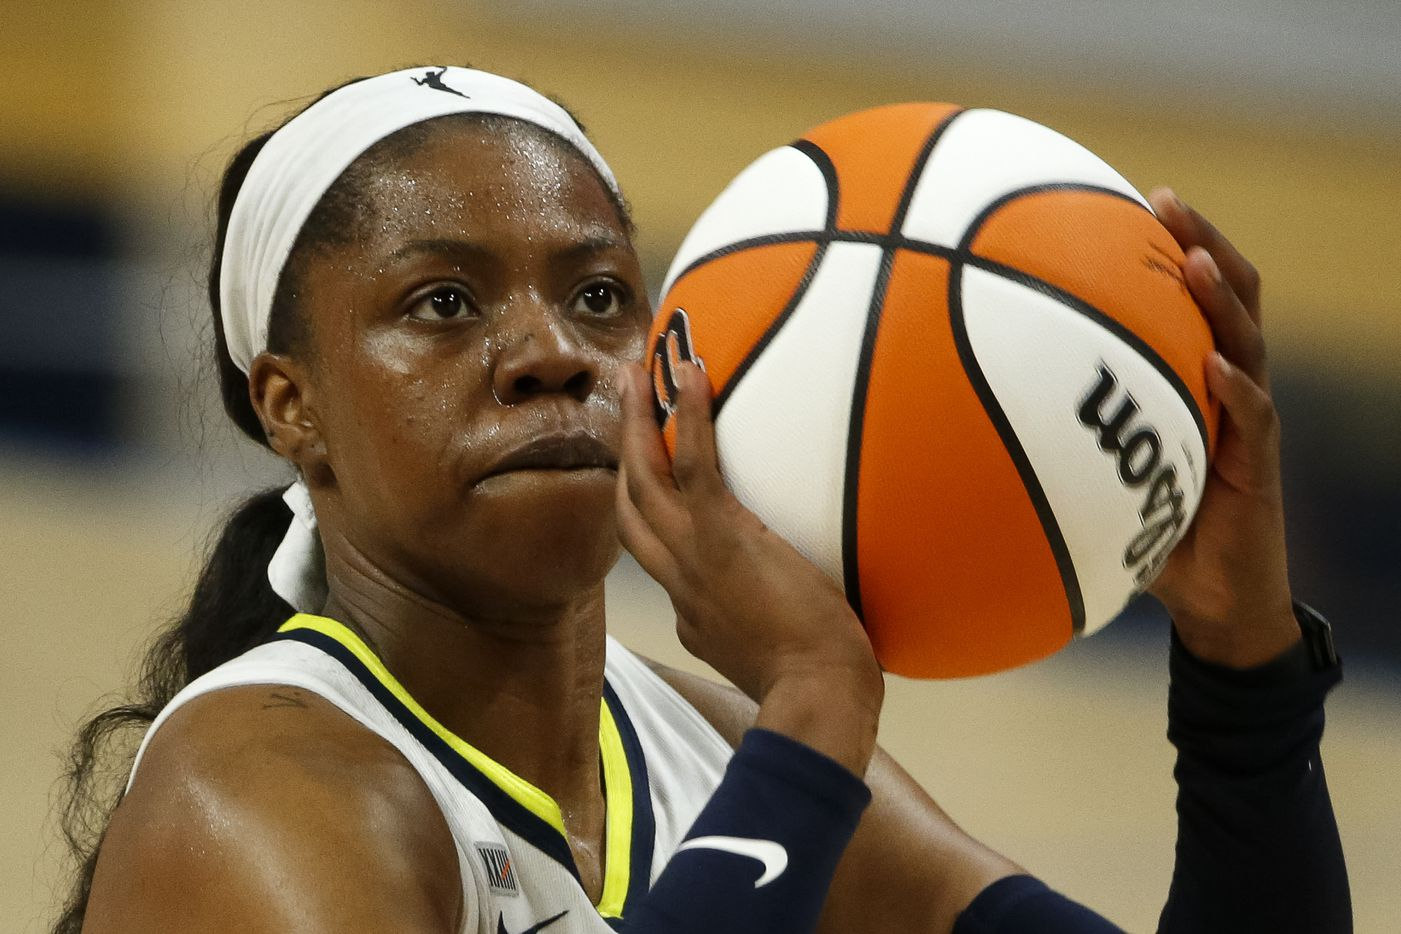 Dallas Wings guard Arike Ogunbowale (24) attempts a free throw during the fourth quarter against the Washington Mystics at College Park Center on Saturday, June 26, 2021, in Arlington. (Elias Valverde II/The Dallas Morning News)